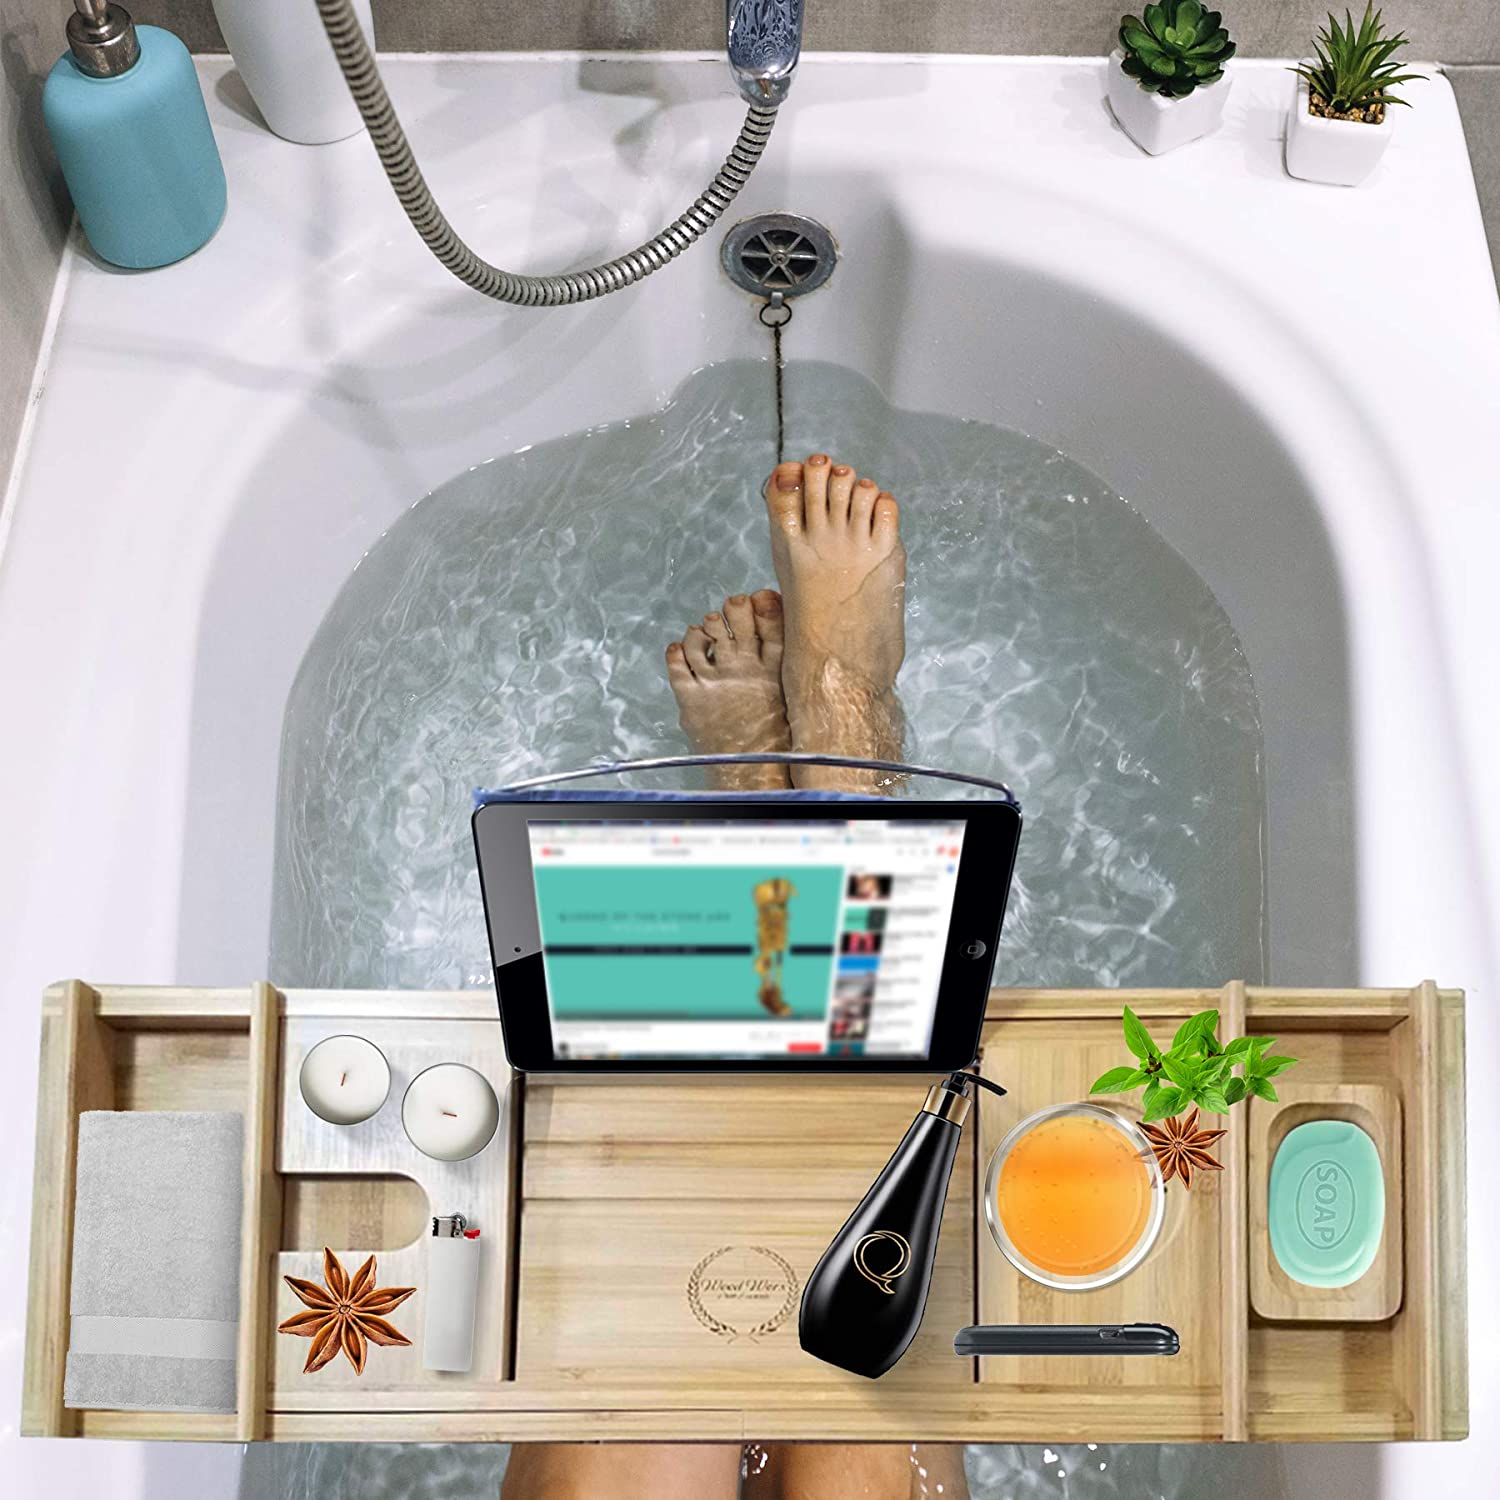 Amazon.com: Wood Worx Bath Essentials - Premium Bamboo Bathtub Caddy ...